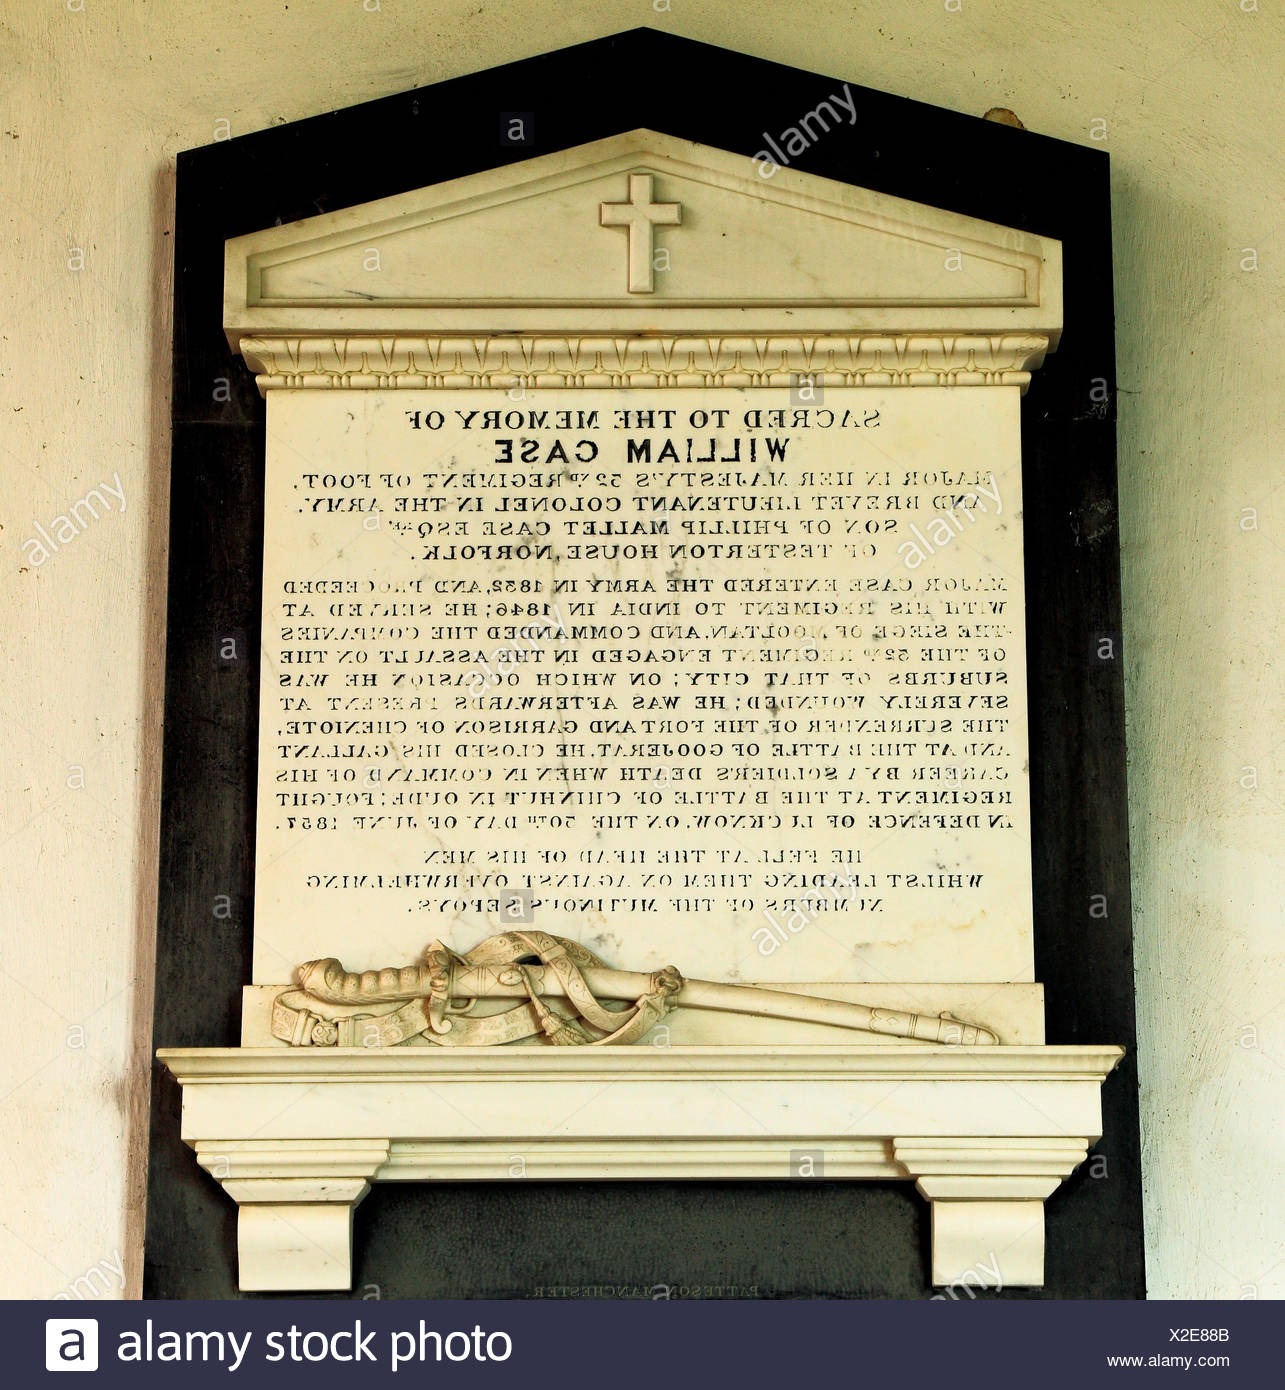 Lucknow, Indian Mutiny, 1857. memorial to William Case, 32nd Regiment of Foot, Brevet Lieutenant Colonel, British Army, Sepoy Mutiny, Dunton, Norfolk - Stock Image